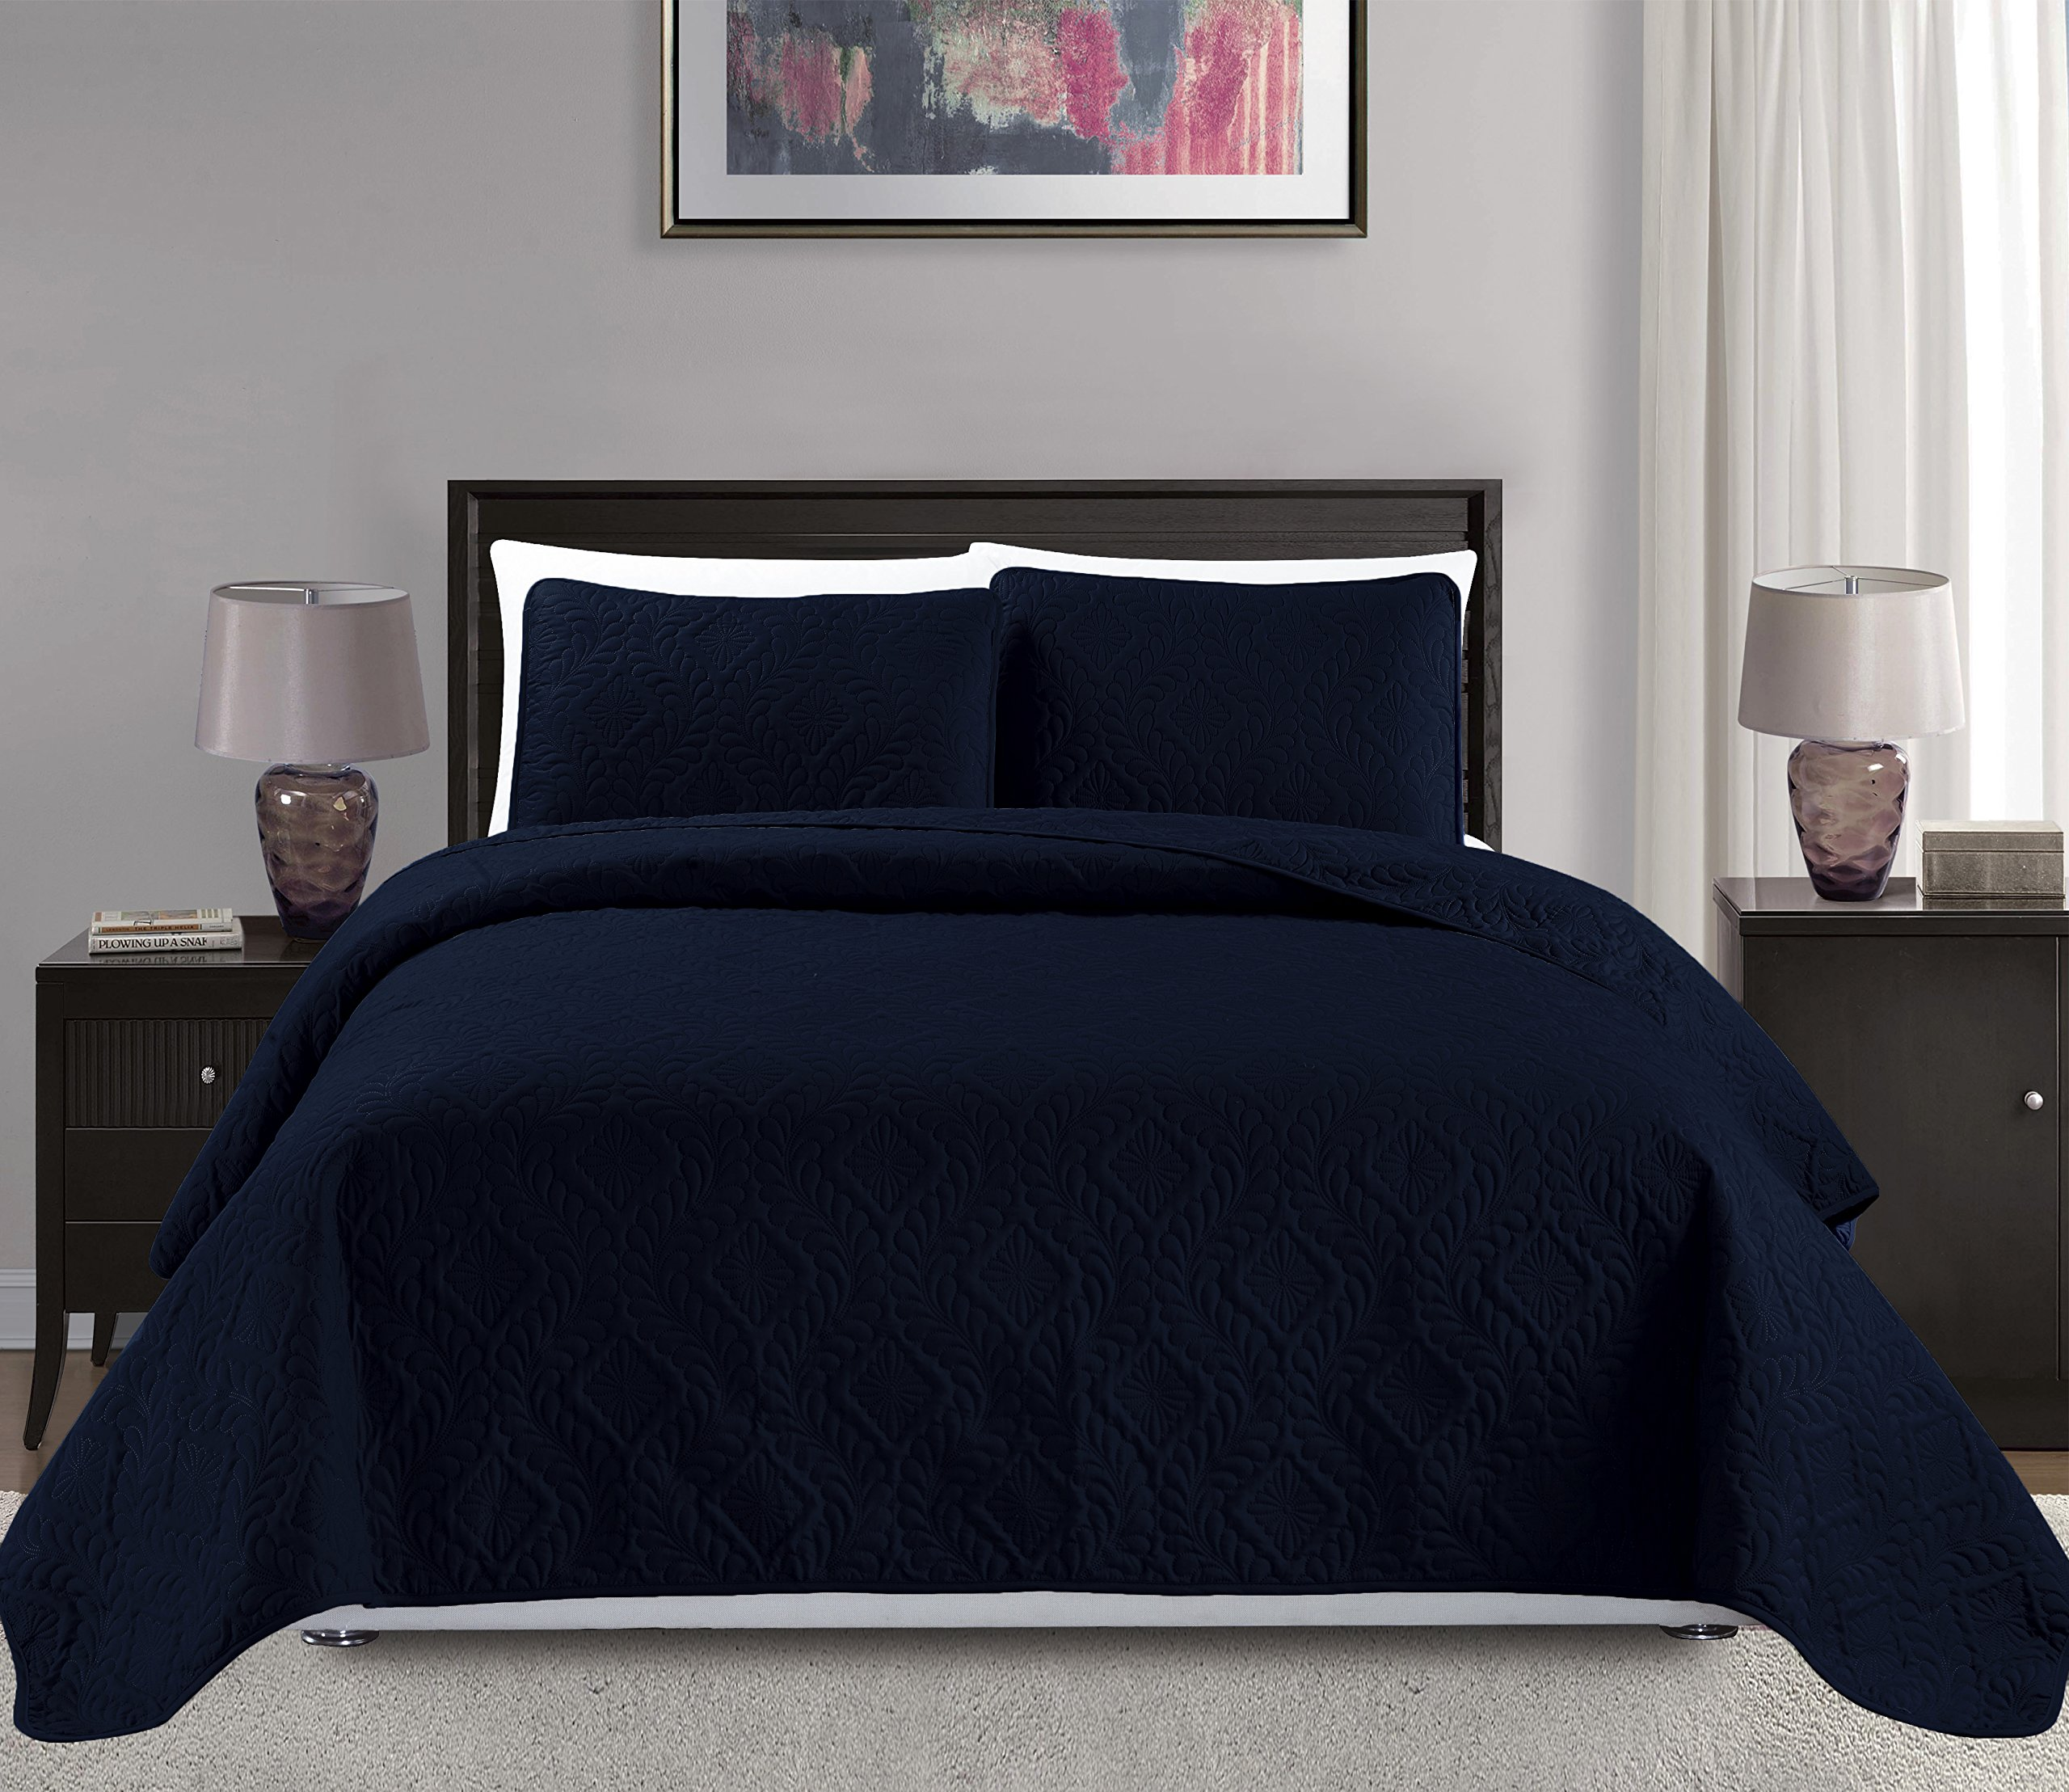 Cheap Navy Bedspread King find Navy Bedspread King deals on line at